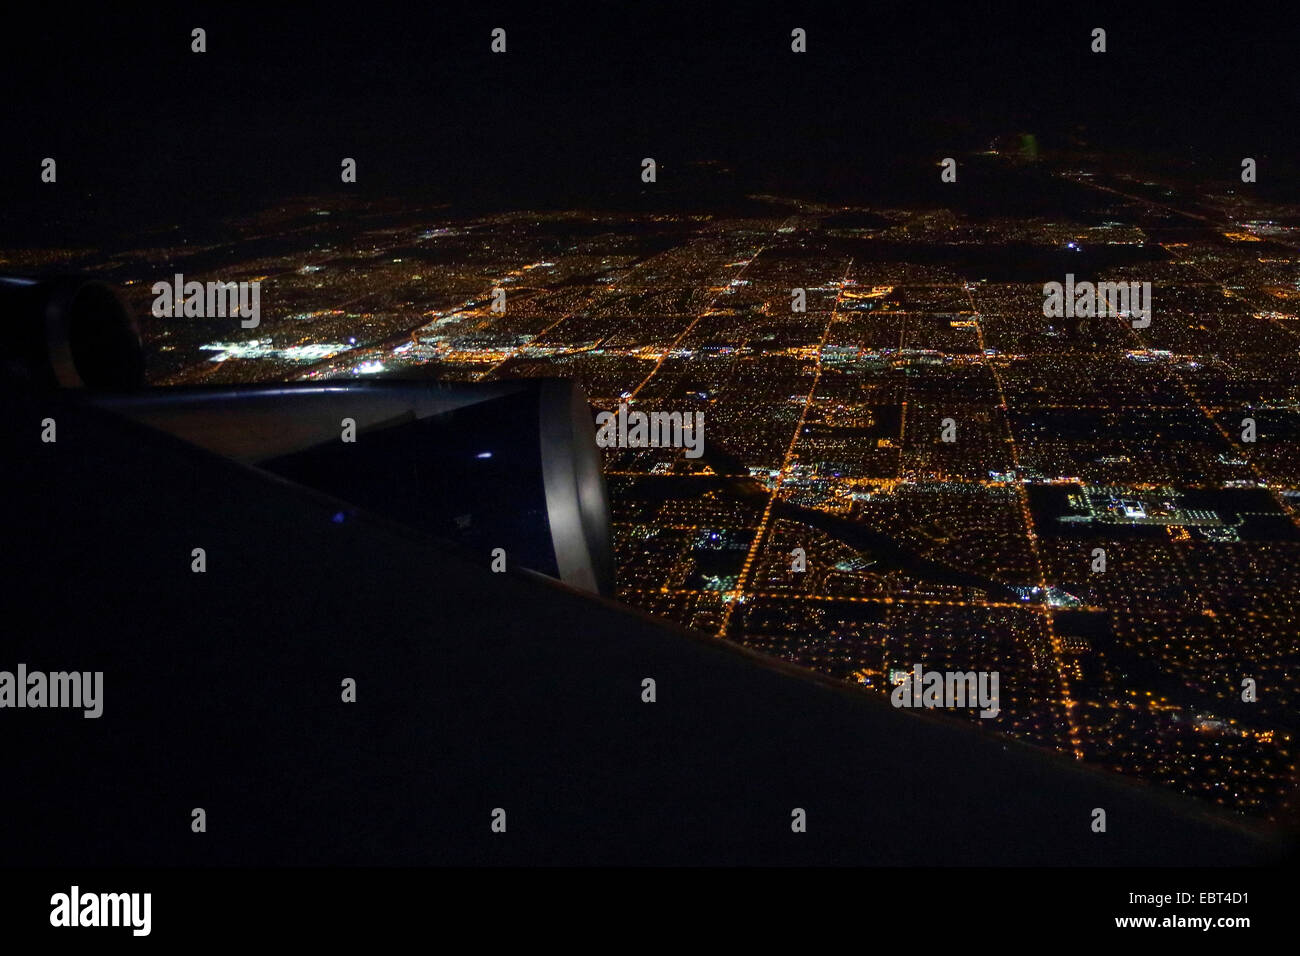 view from airplane to the city of Phoenix at night, USA, Arizona, Phoenix - Stock Image